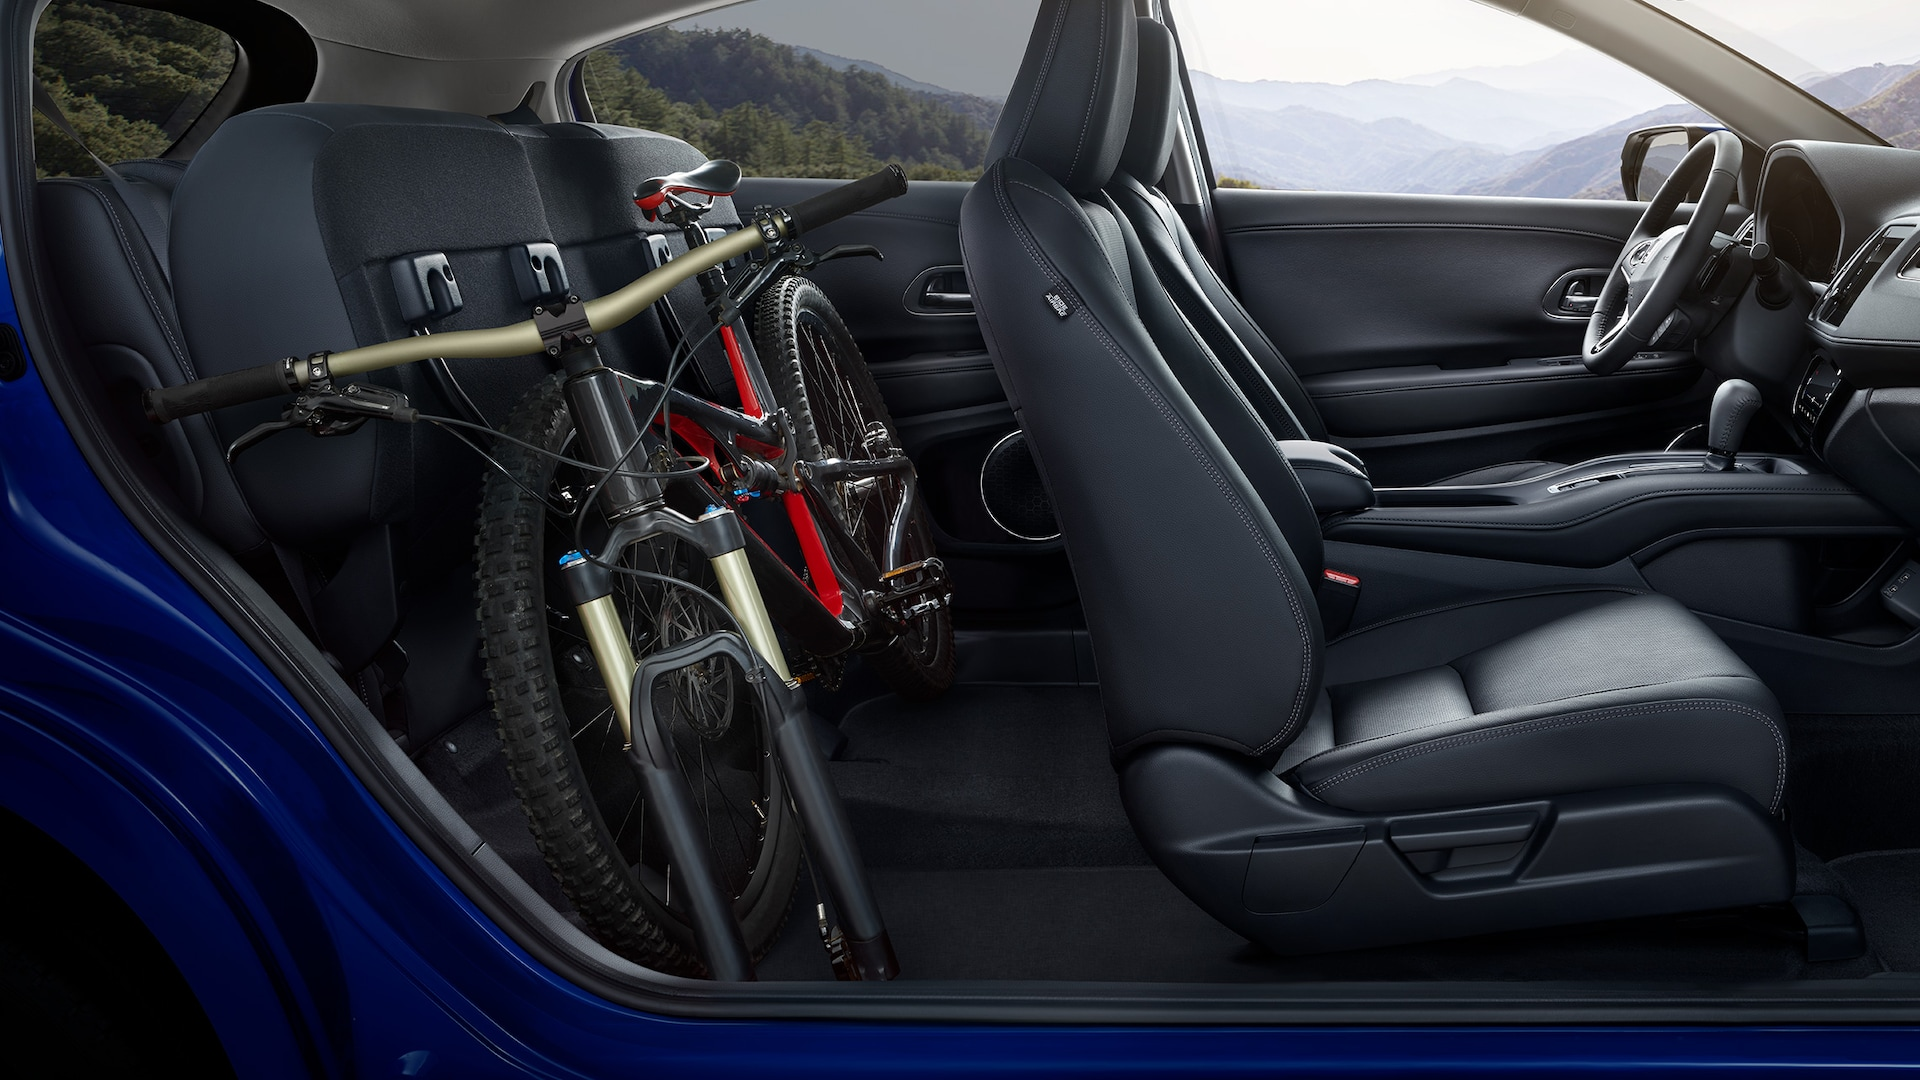 Passenger-side interior view of the 2021 Honda HR-V EX-L with Black Leather, with folded rear seats, stowing a bike.